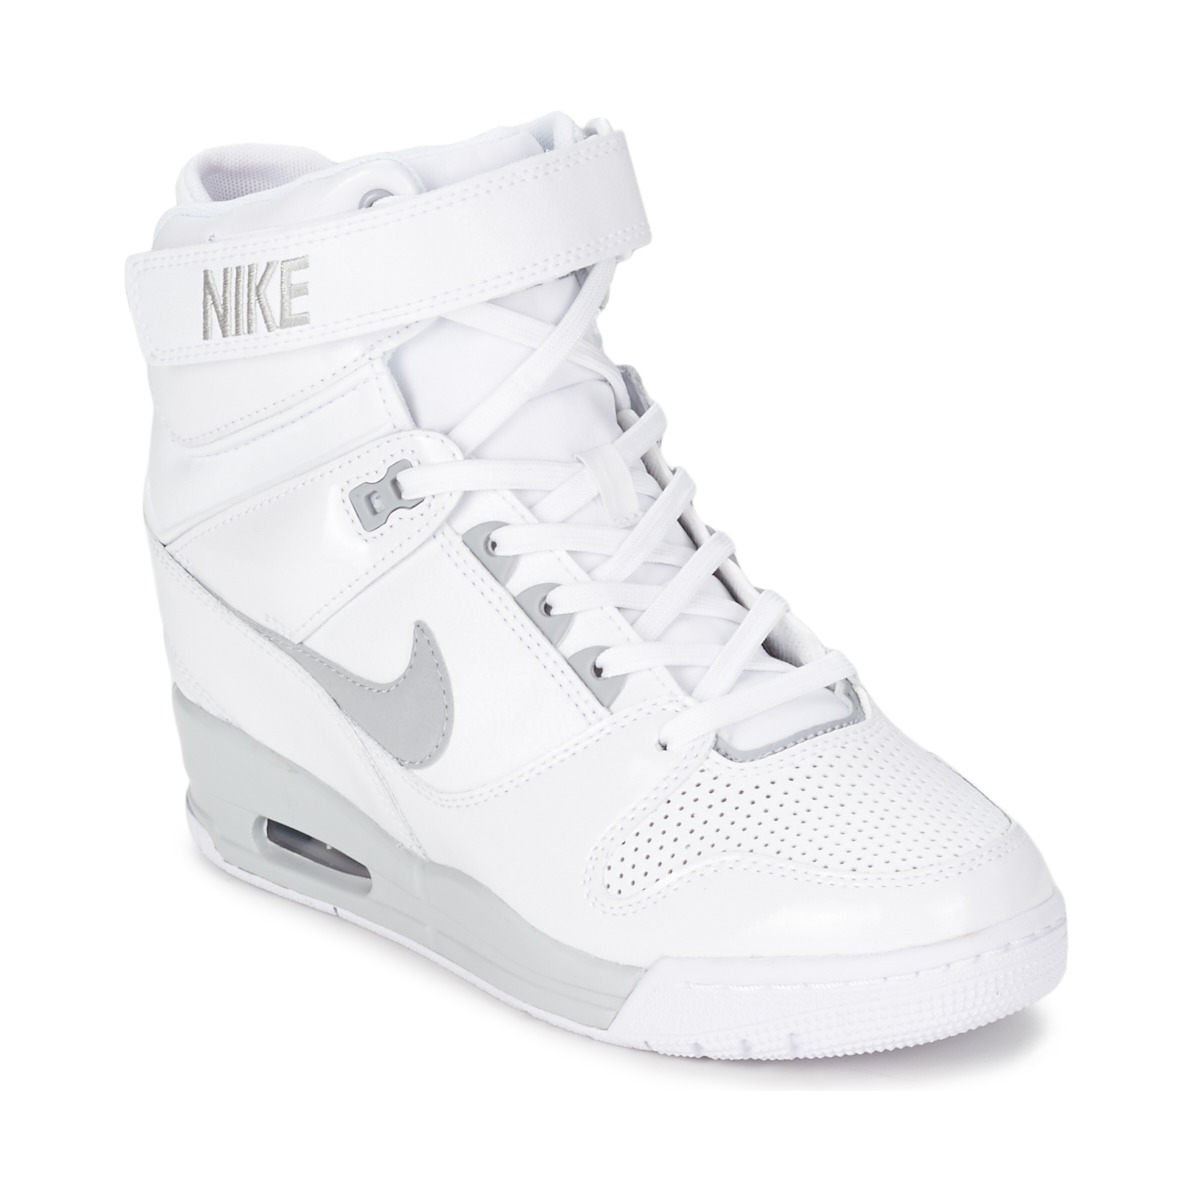 100% Authentique basket nike femme compensee Outlet en ligne